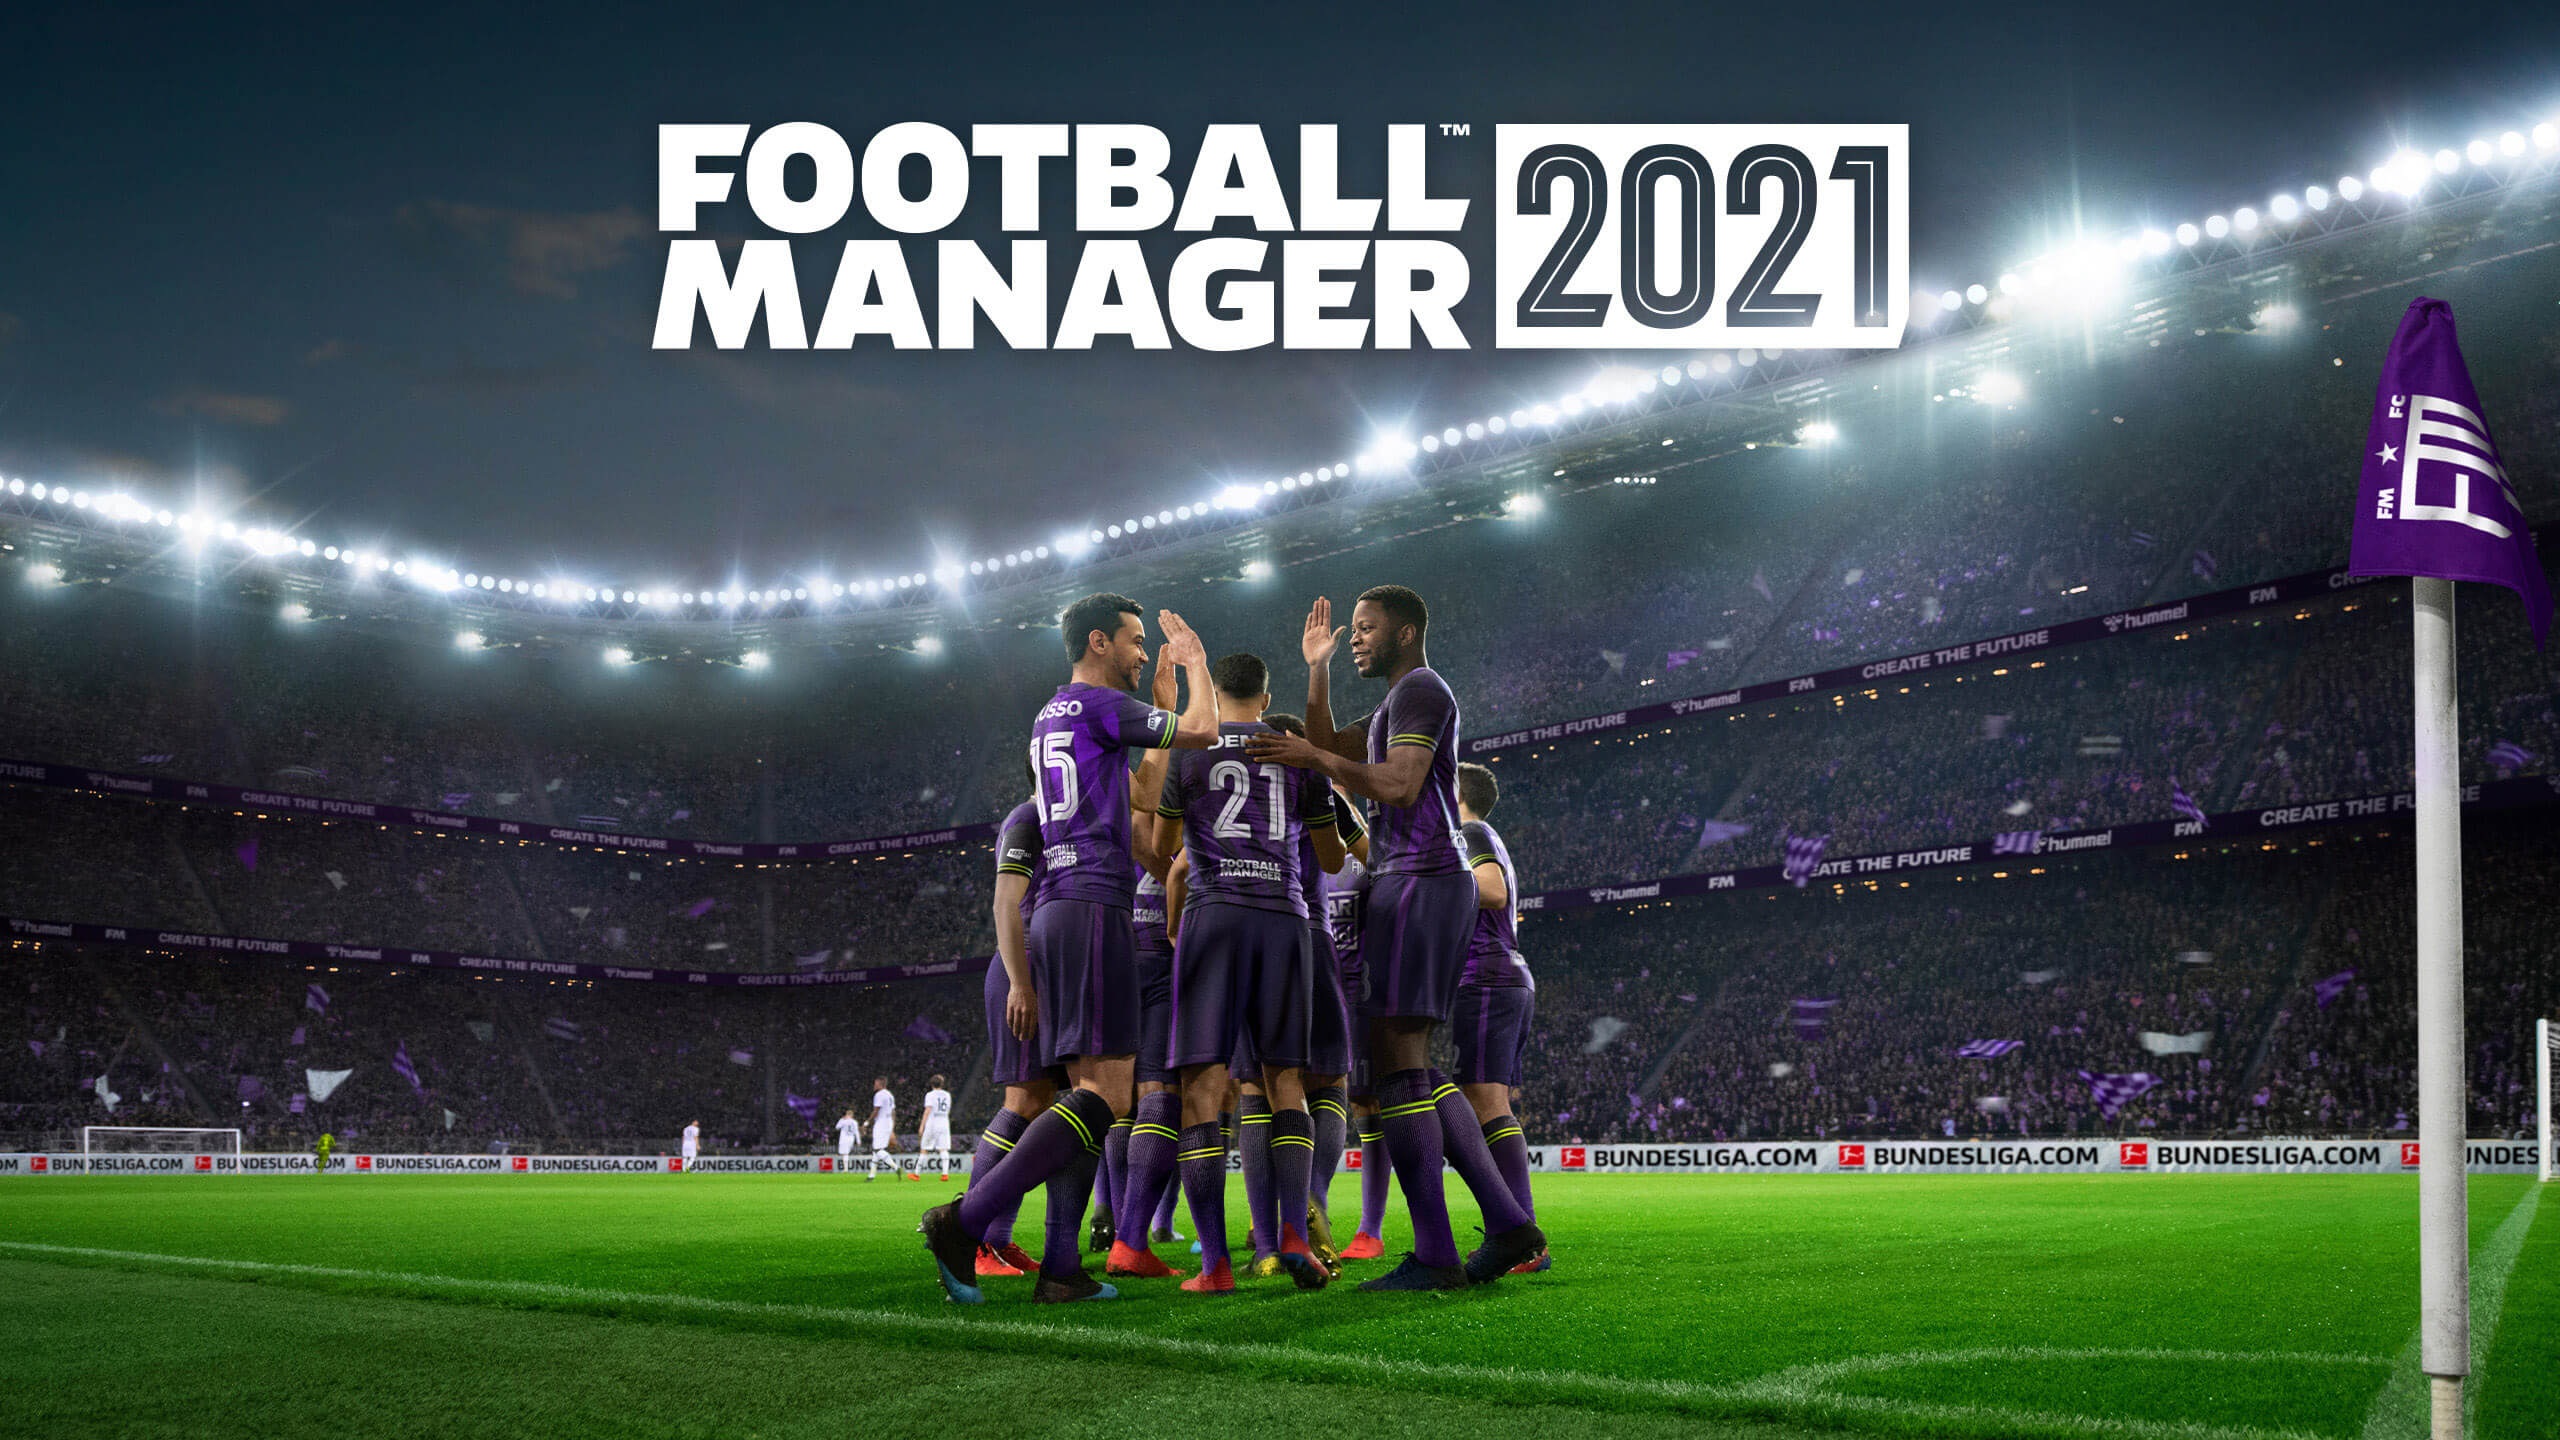 Football Manager 2021 Covid